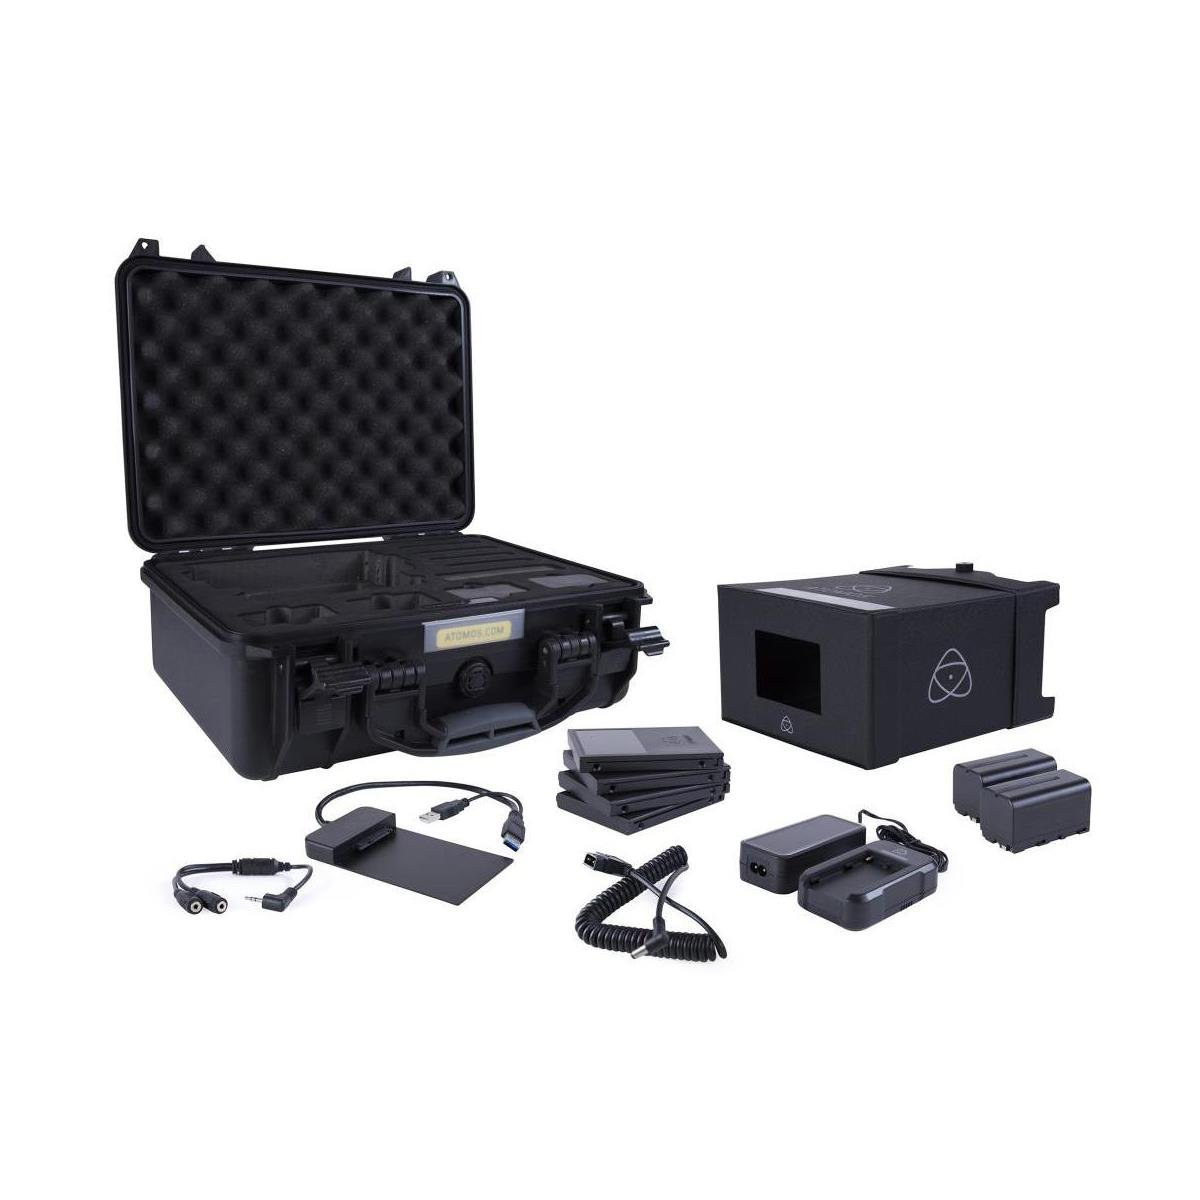 Atomos Shogun Inferno 7'' with Accessories Kit - Includes 2x Batteries with Fast Charger, 4x Master Caddies, Docking Station, HDR Sunhood, Power Supply, Control Cable, and Hard Case